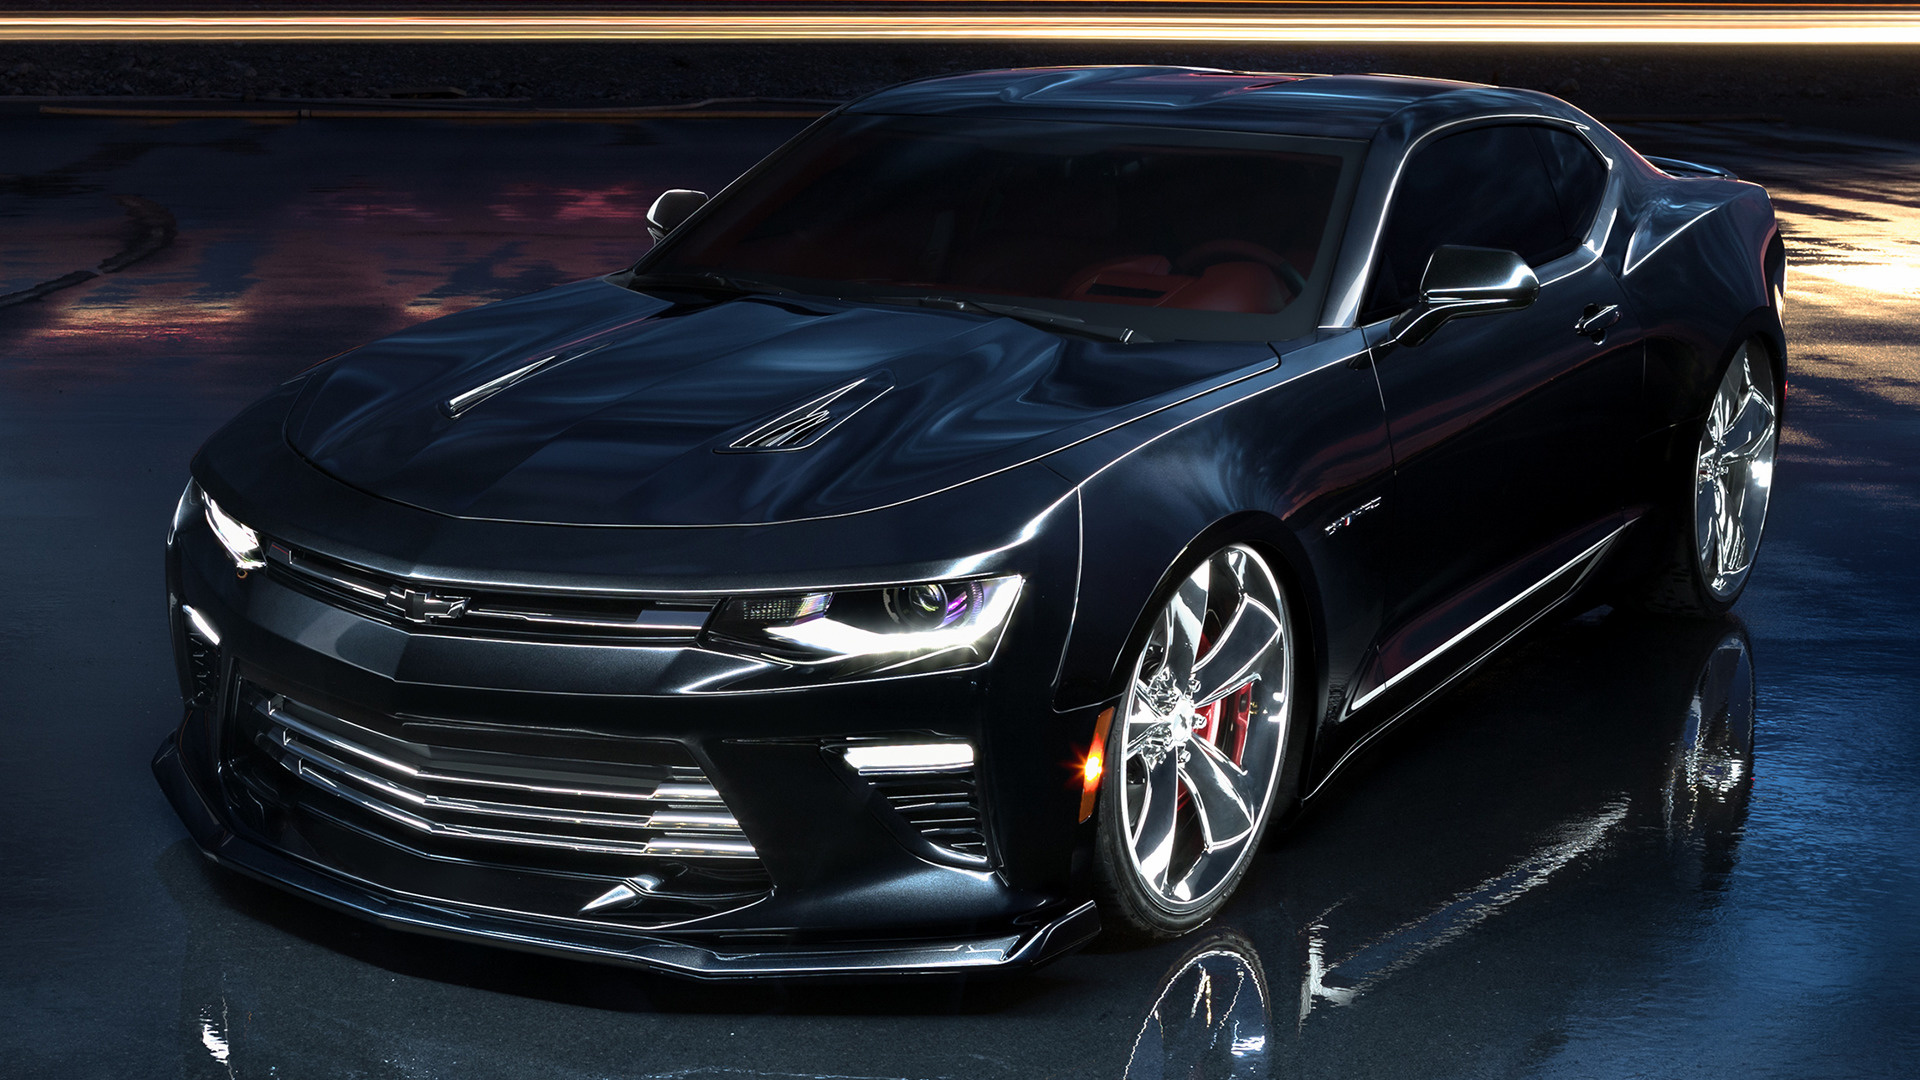 Chevrolet Camaro Slammer Concept 2016 Wallpapers And HD Images